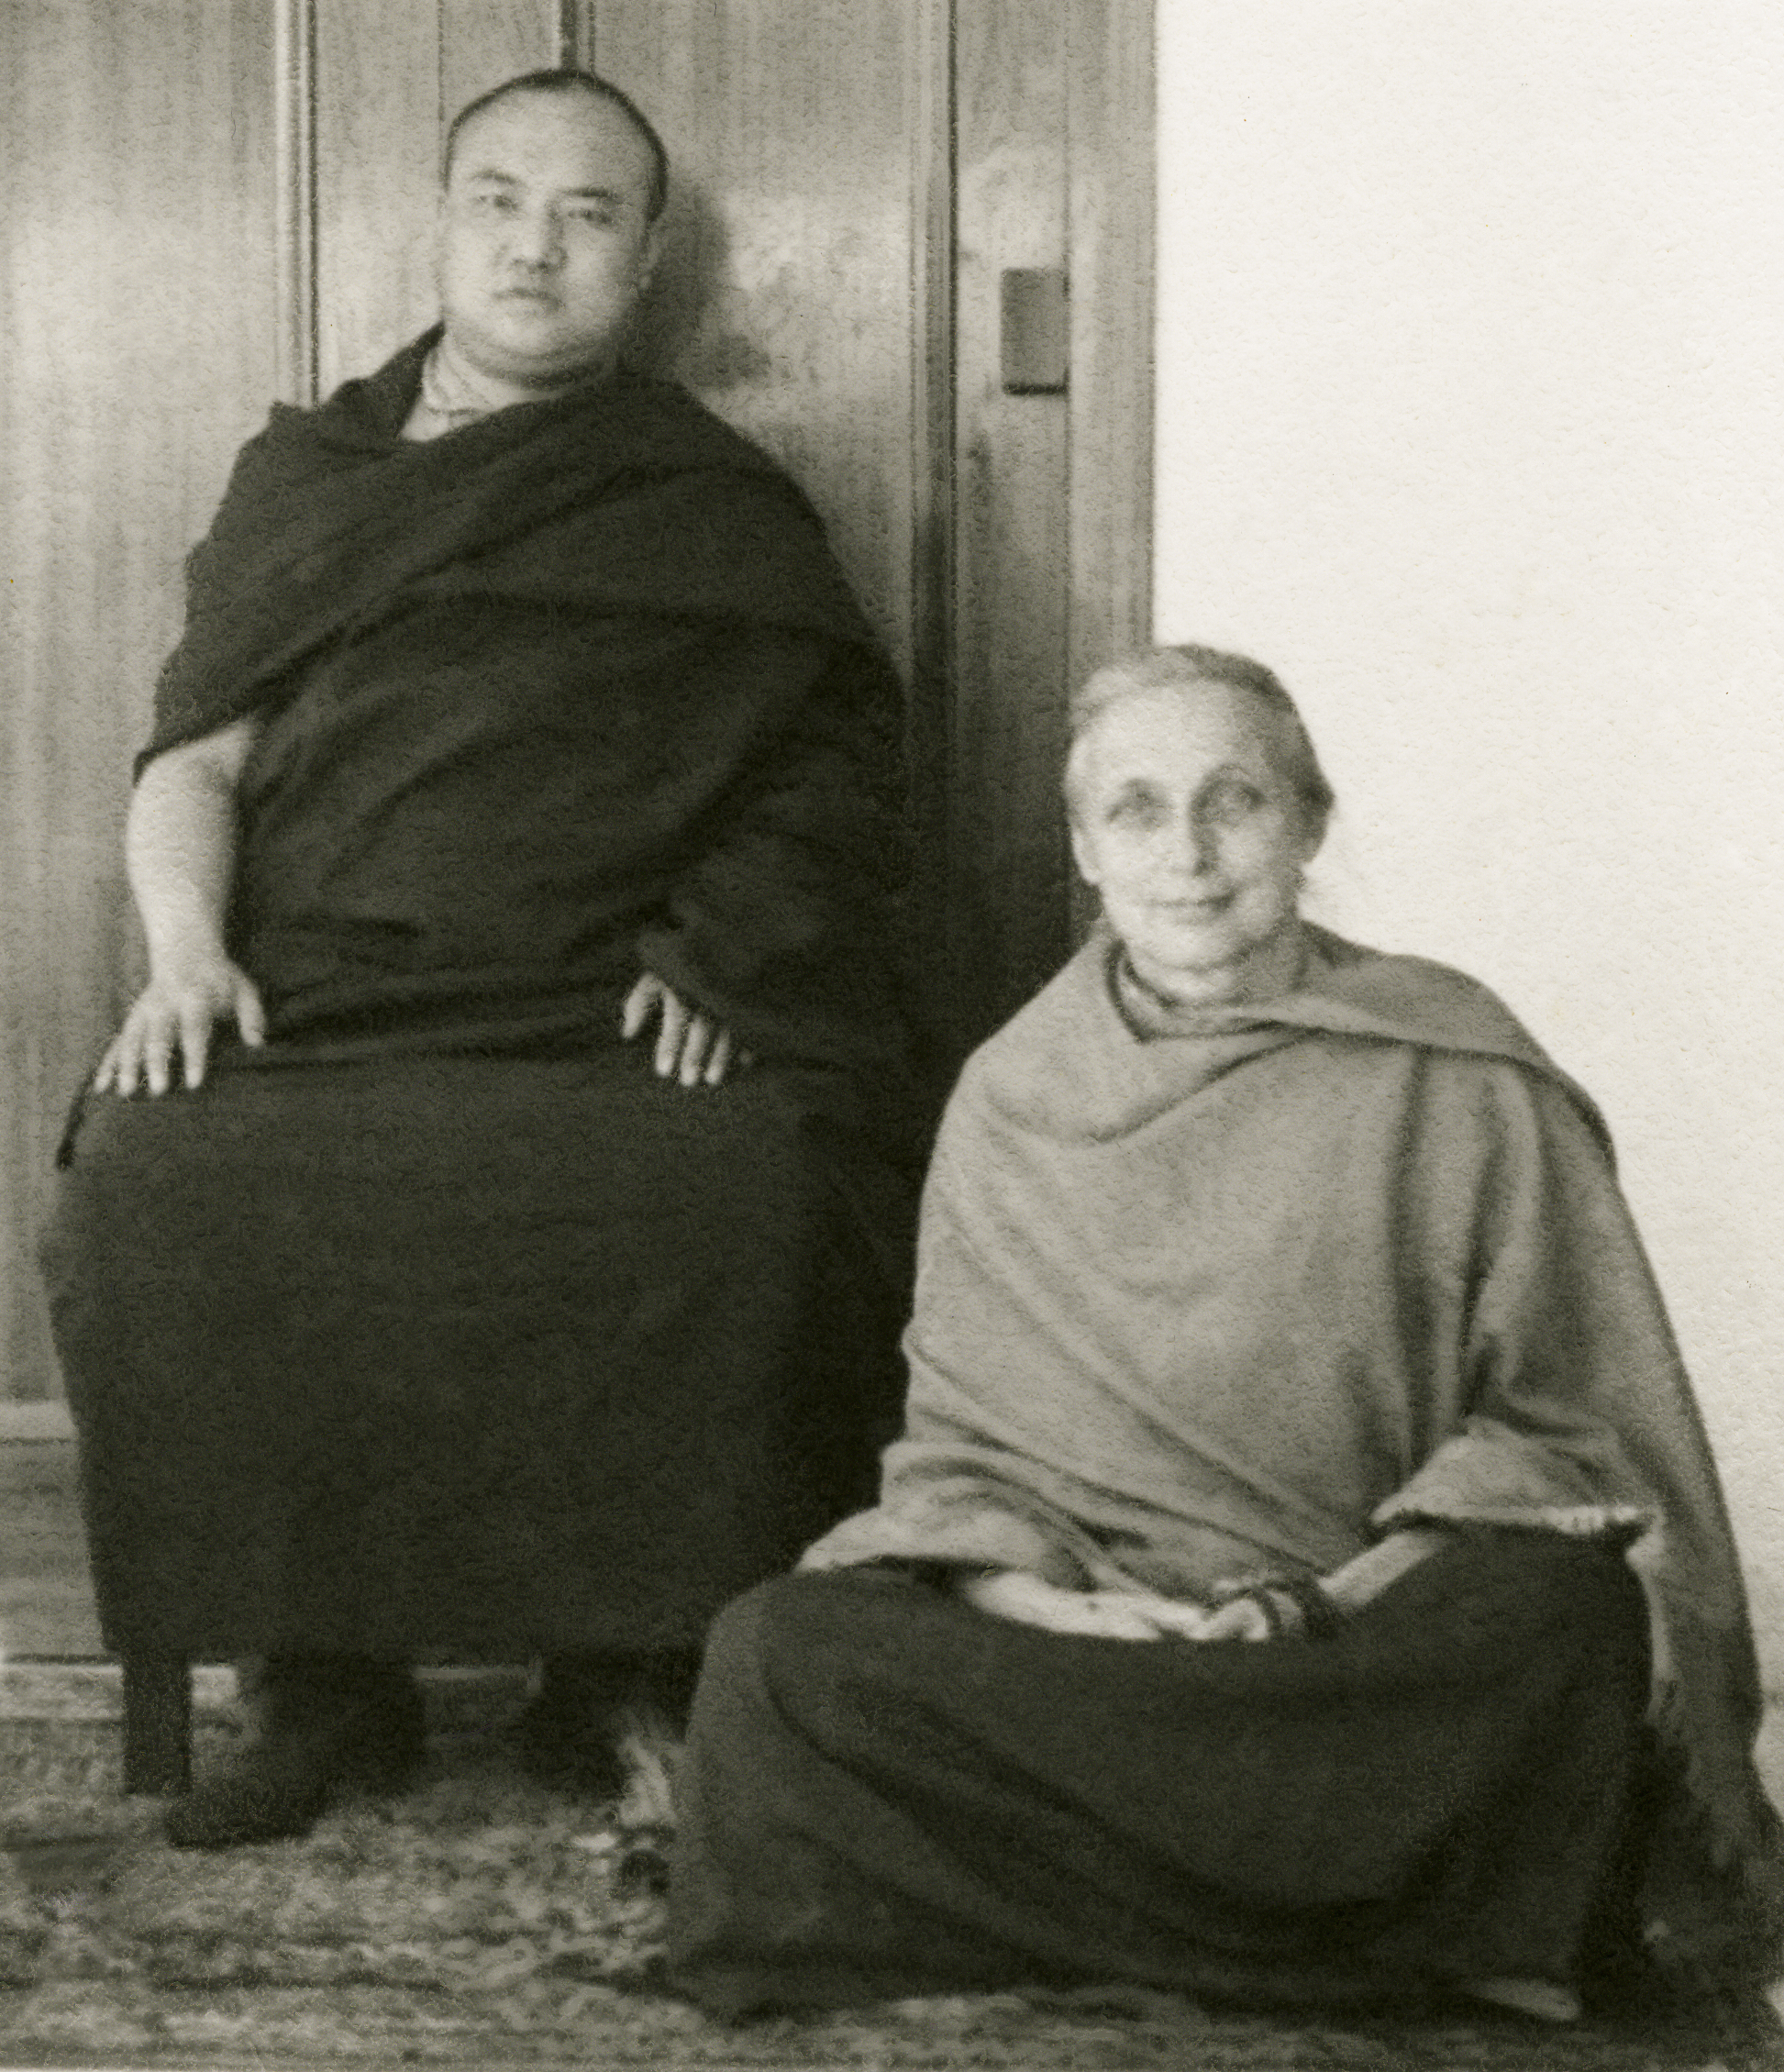 Freda Bedi, aka Sister Palmo, with His Holiness the Sixteenth Karmapa. She helped establish the Young Lamas School and found a pen friend and sponsor for the young Lama Zopa Rinpoche. (PhotoShambhala Archives Collection)